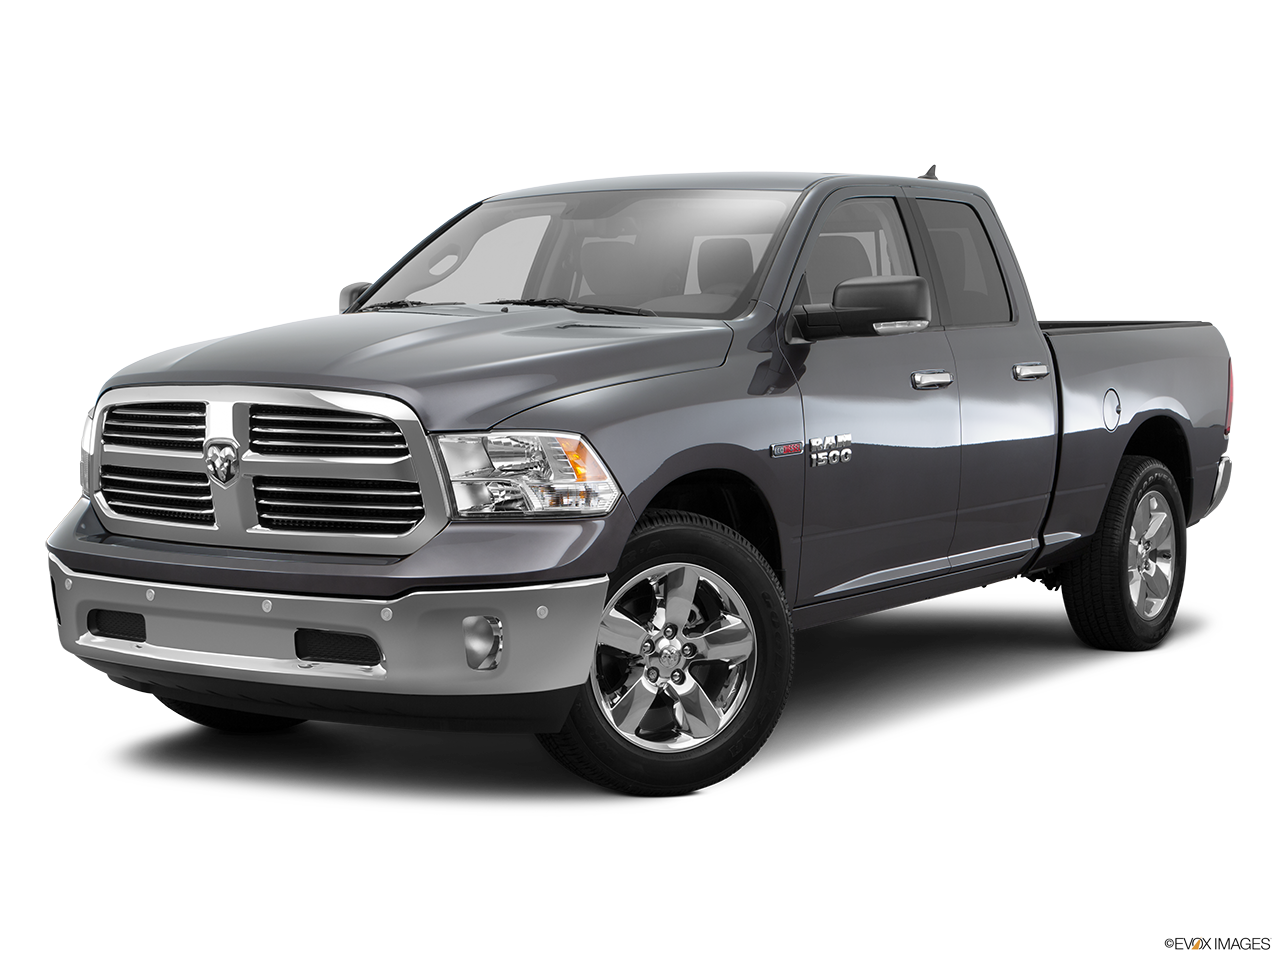 Test Drive A 2016 RAM 1500 at Huntington Beach Chrysler Dodge Jeep Ram in Huntington Beach